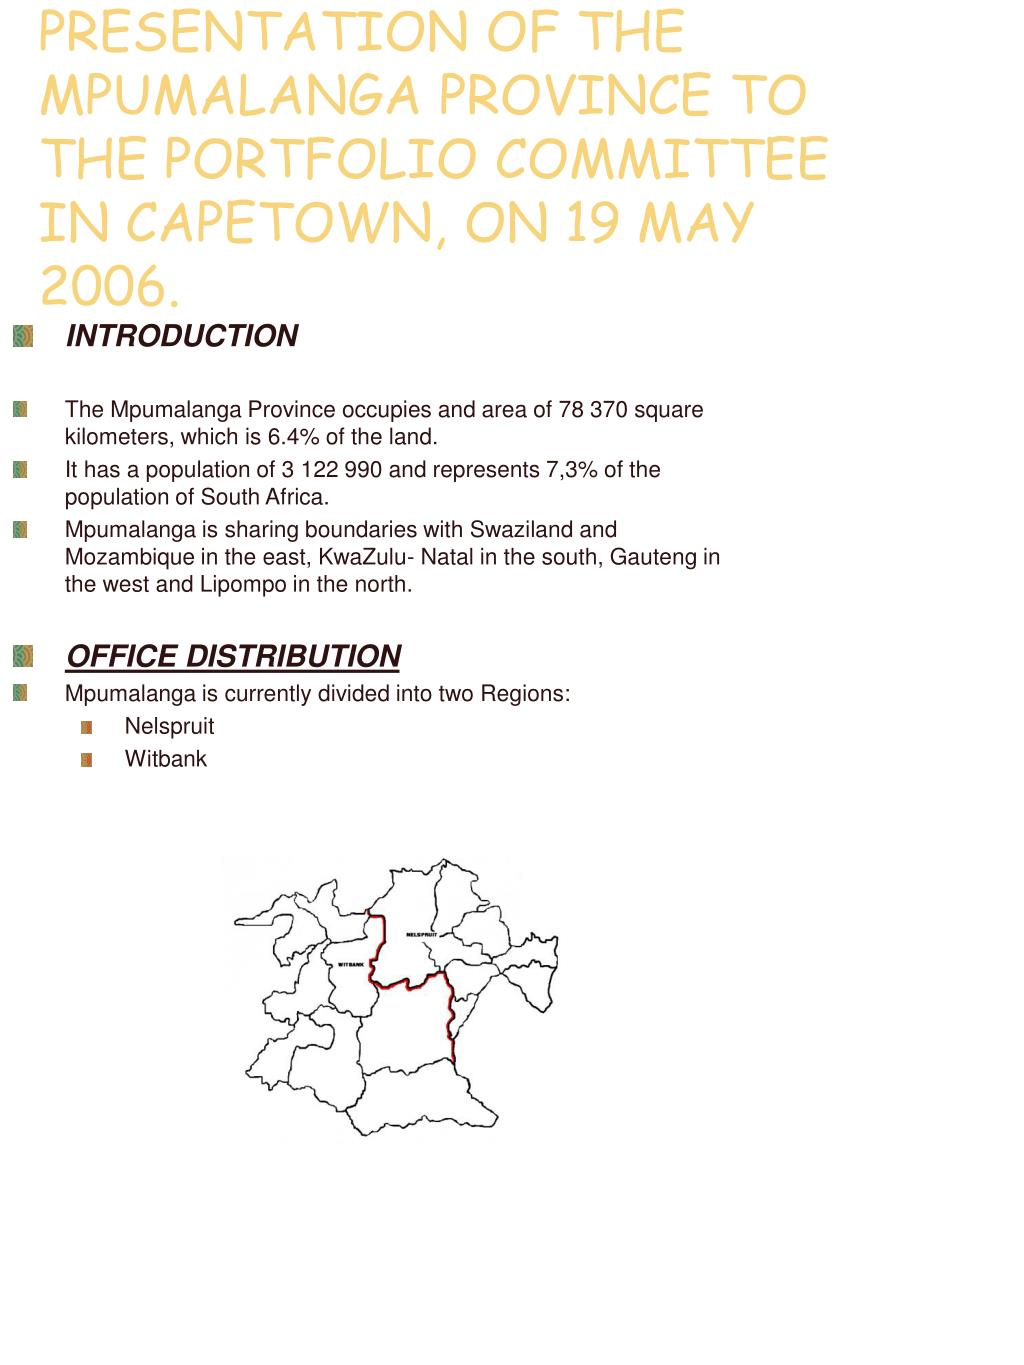 PRESENTATION OF THE MPUMALANGA PROVINCE TO THE PORTFOLIO COMMITTEE IN CAPETOWN, ON 19 MAY 2006.